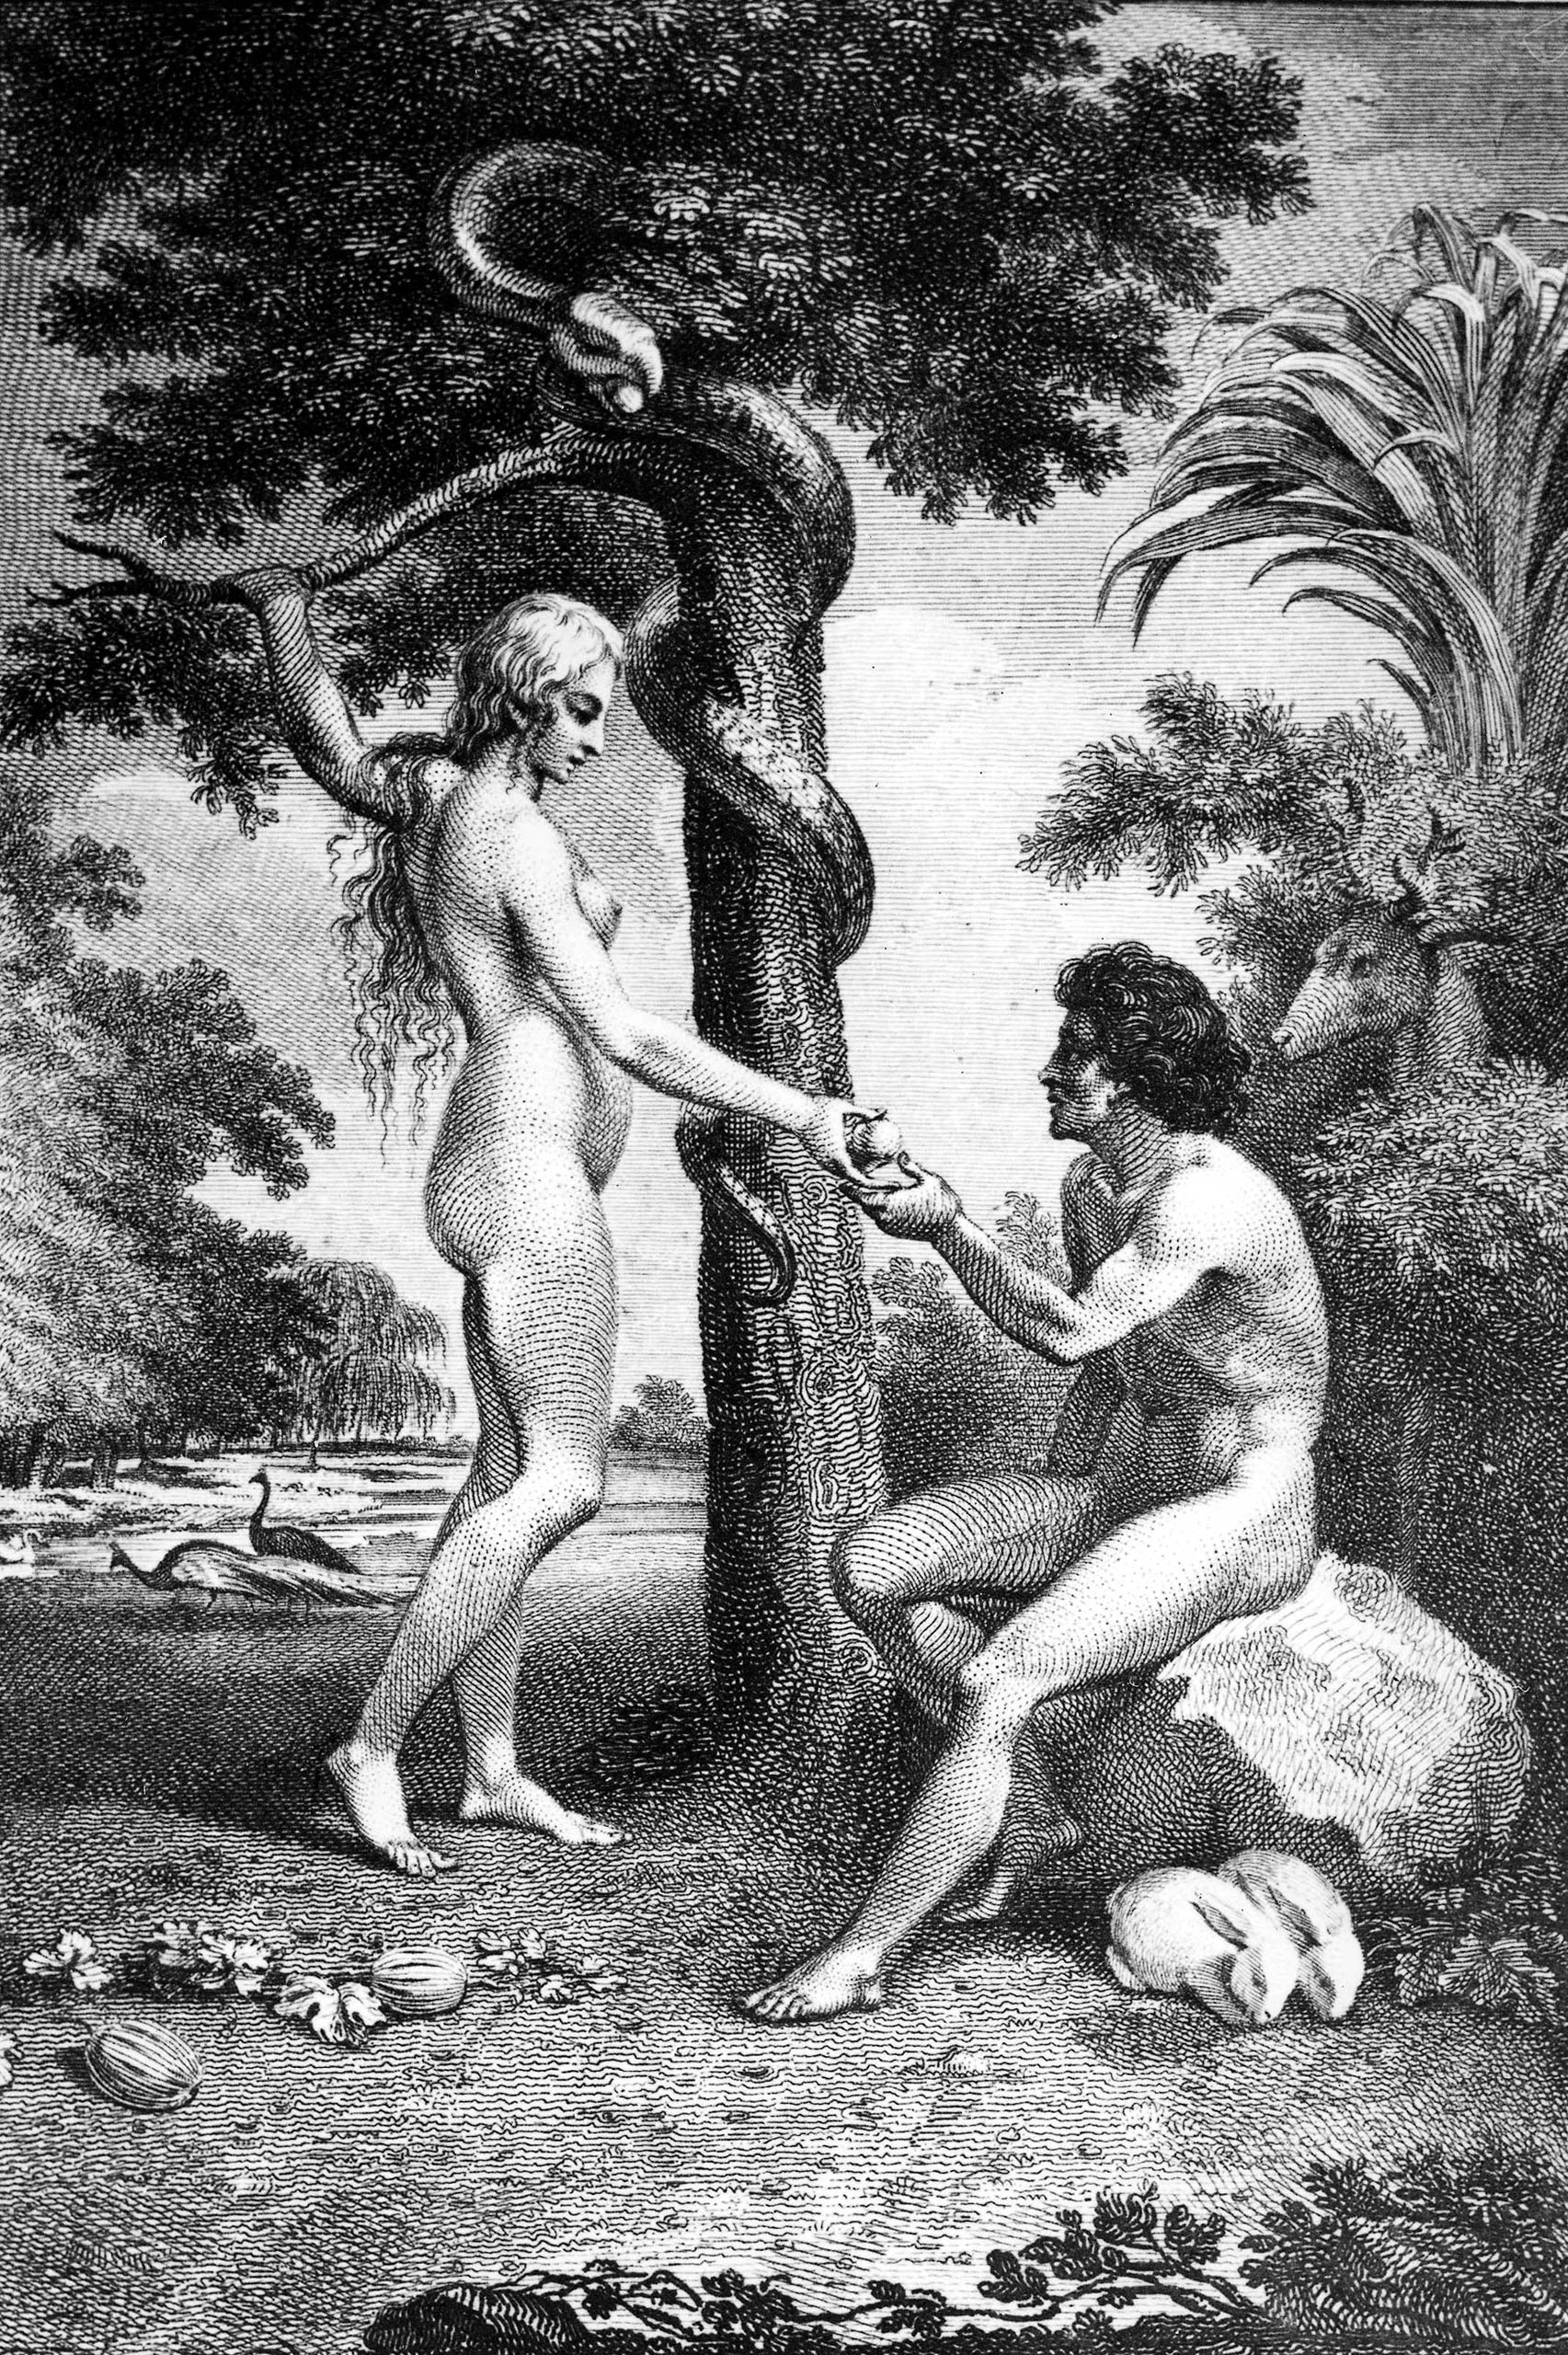 Classic Collection. Page 118. 10418653. A Biblical illustration showing Eve tempting Adam with the apple in the Garden of Eden.